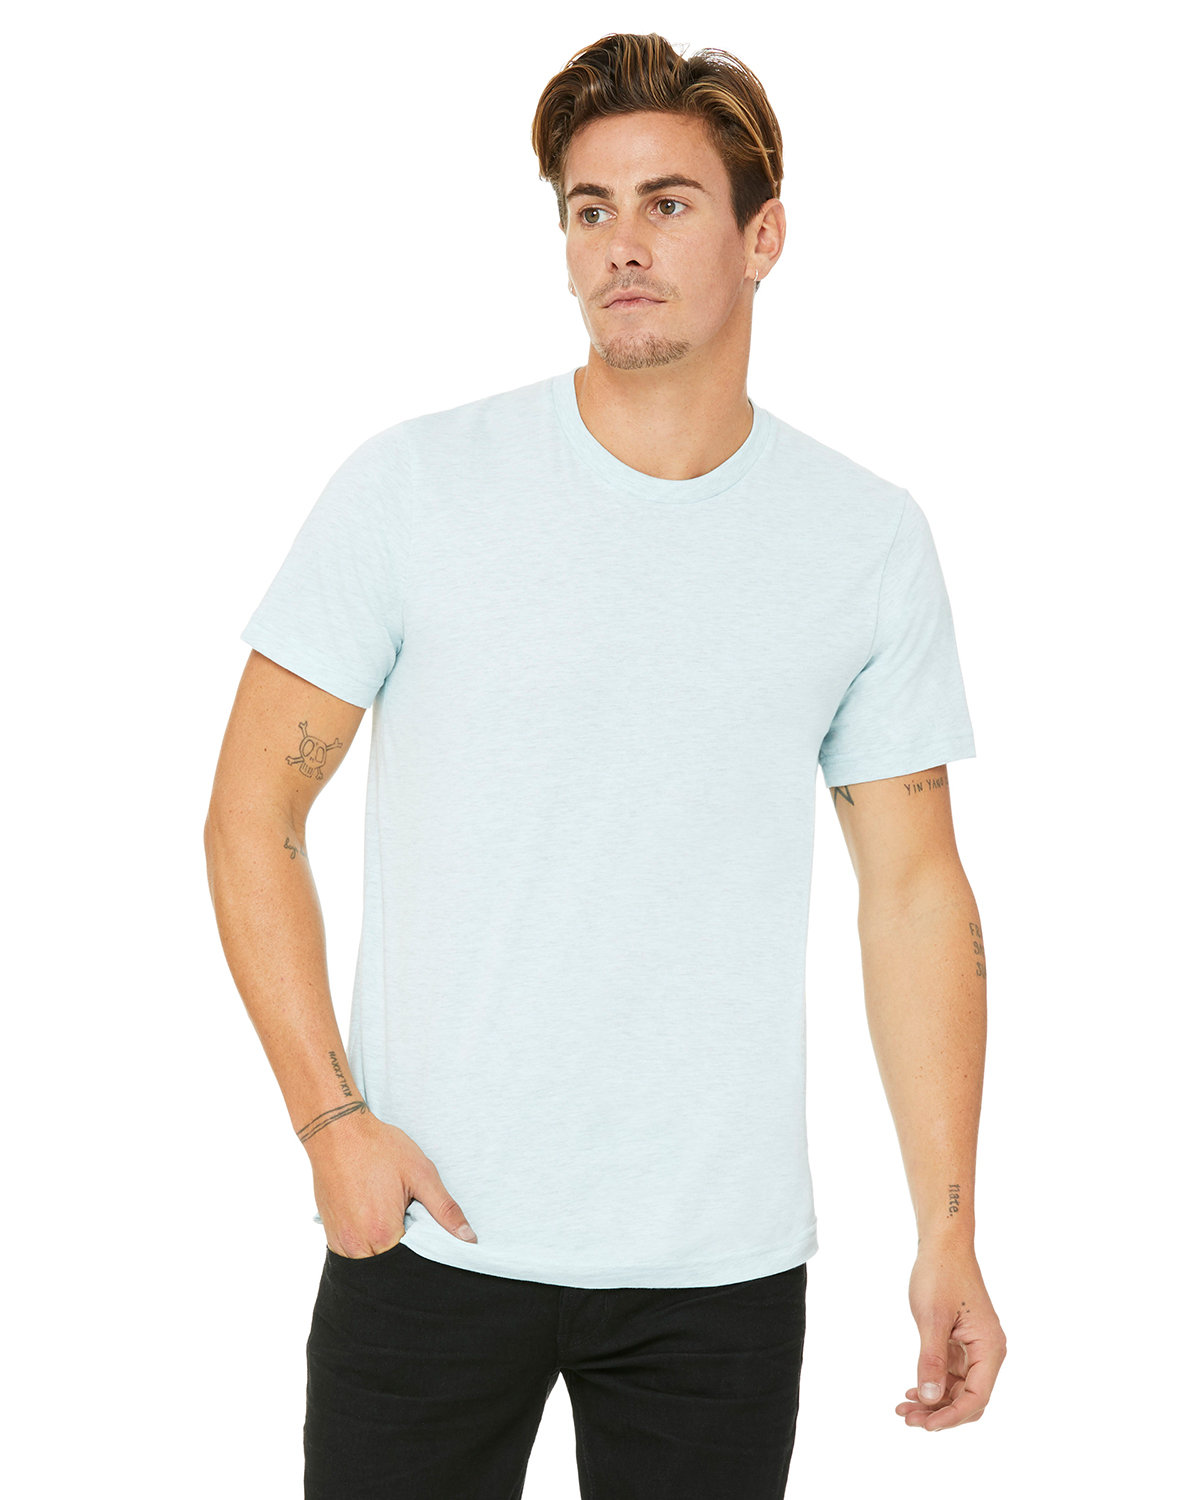 Bella + Canvas Unisex Heather CVC T-Shirt HTH PRSM ICE BLU